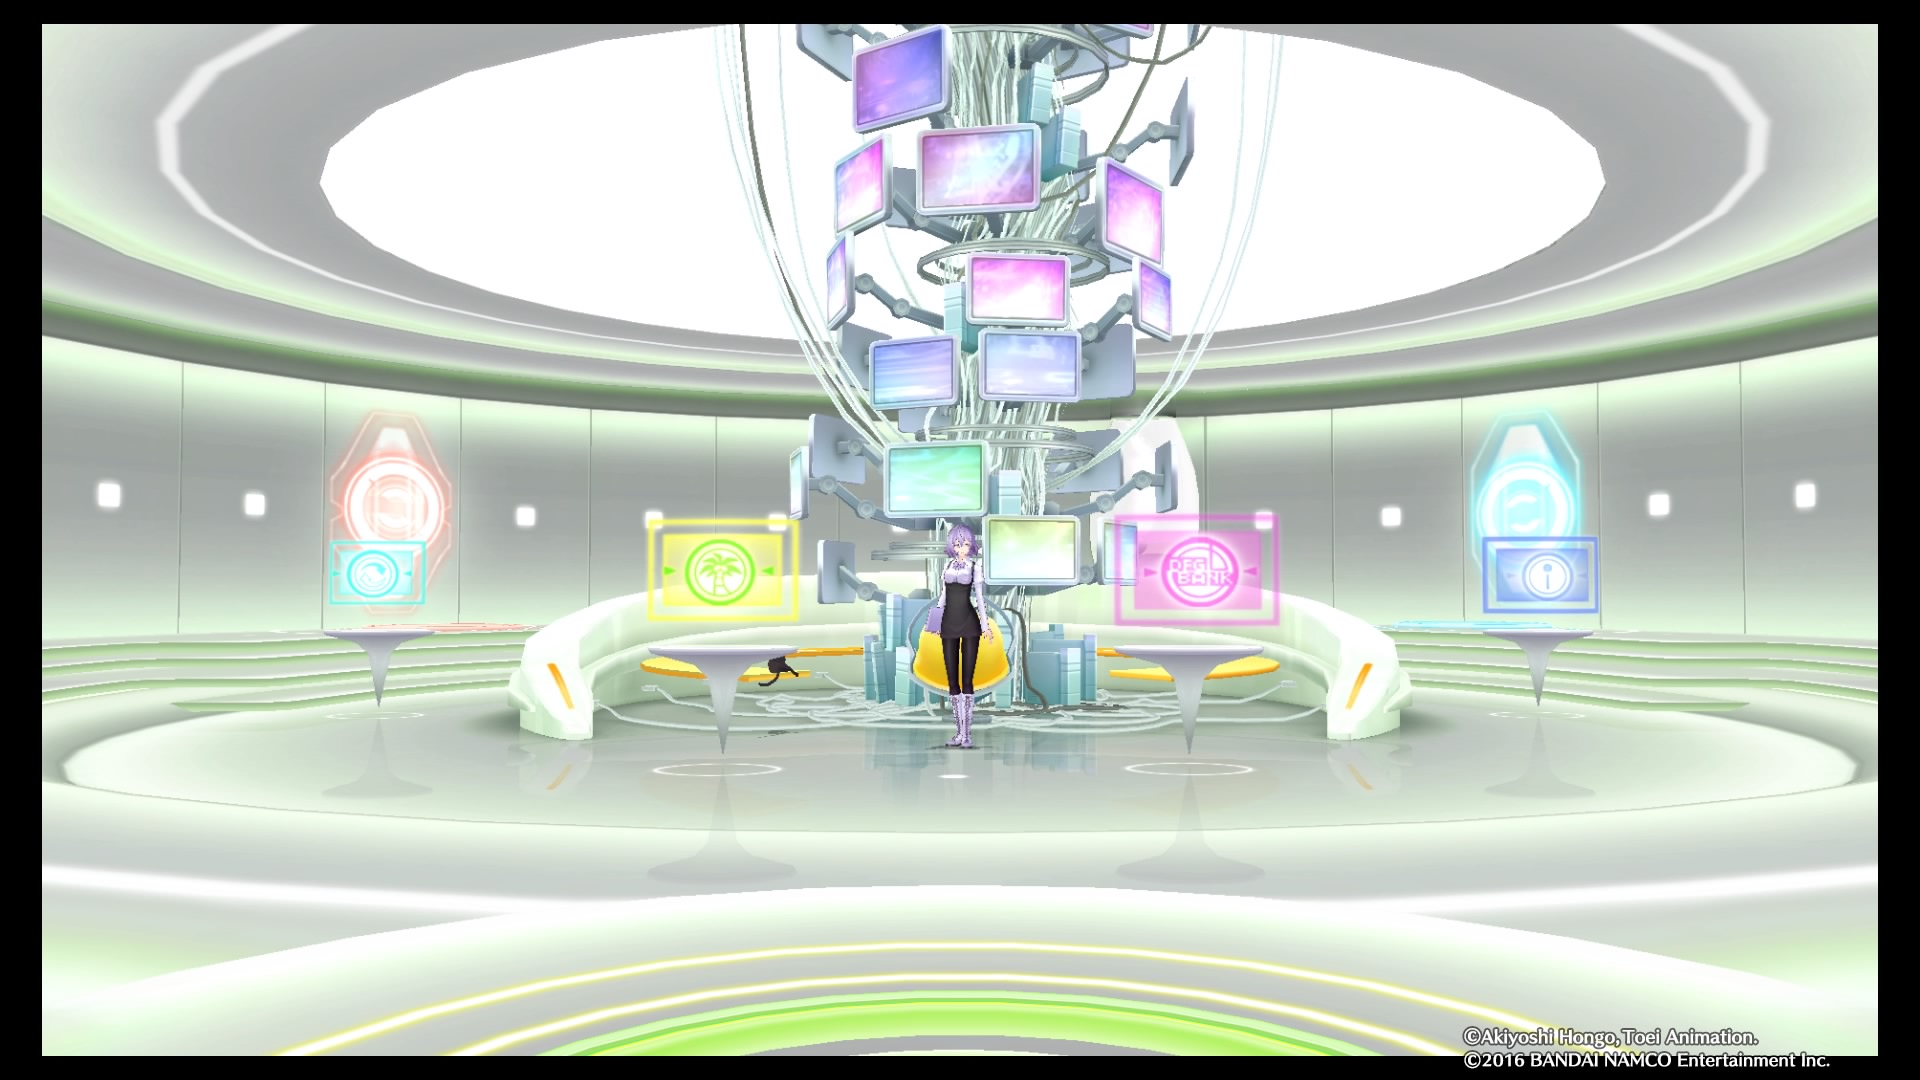 DigimonStory-CyberSleuth PS4 Test 002